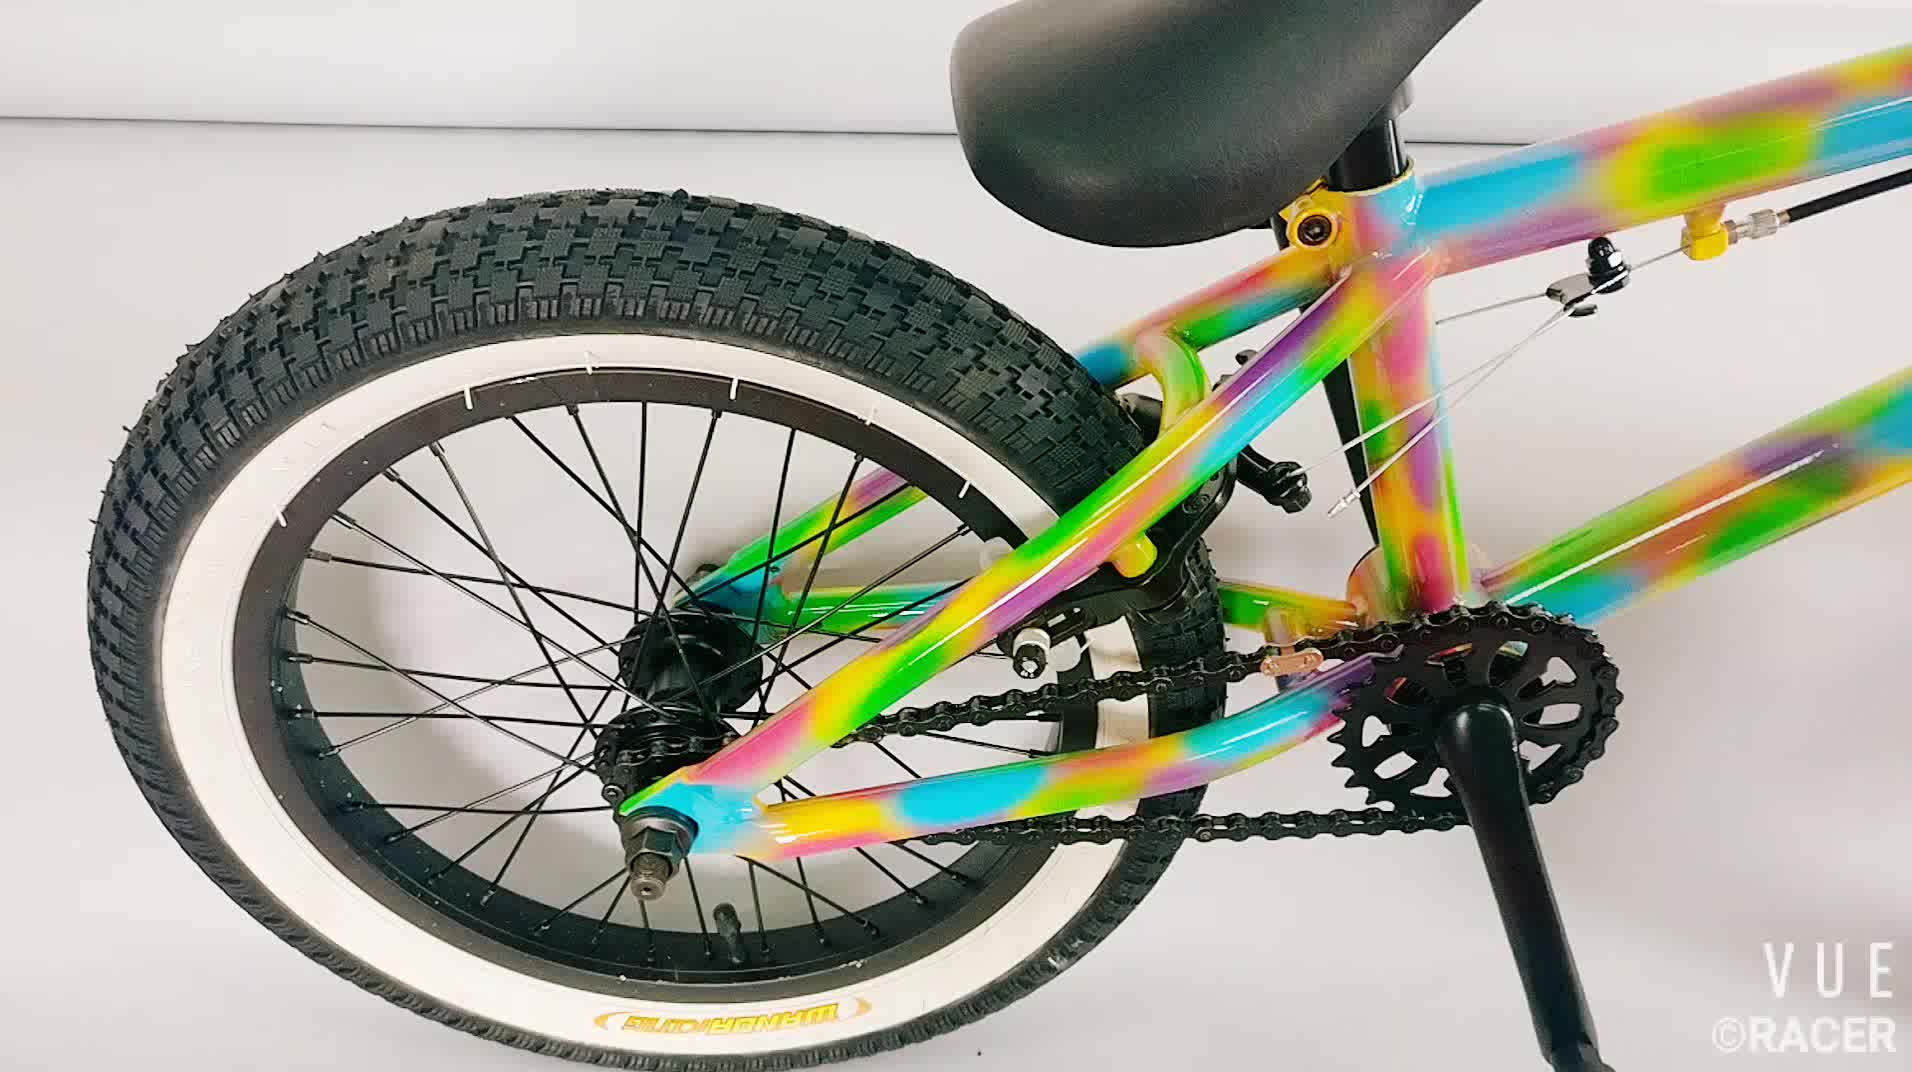 16 inch customized professional high quality hi-ten steel flatland bmx bicycle mini freestyle BMX race bike for cheap sale